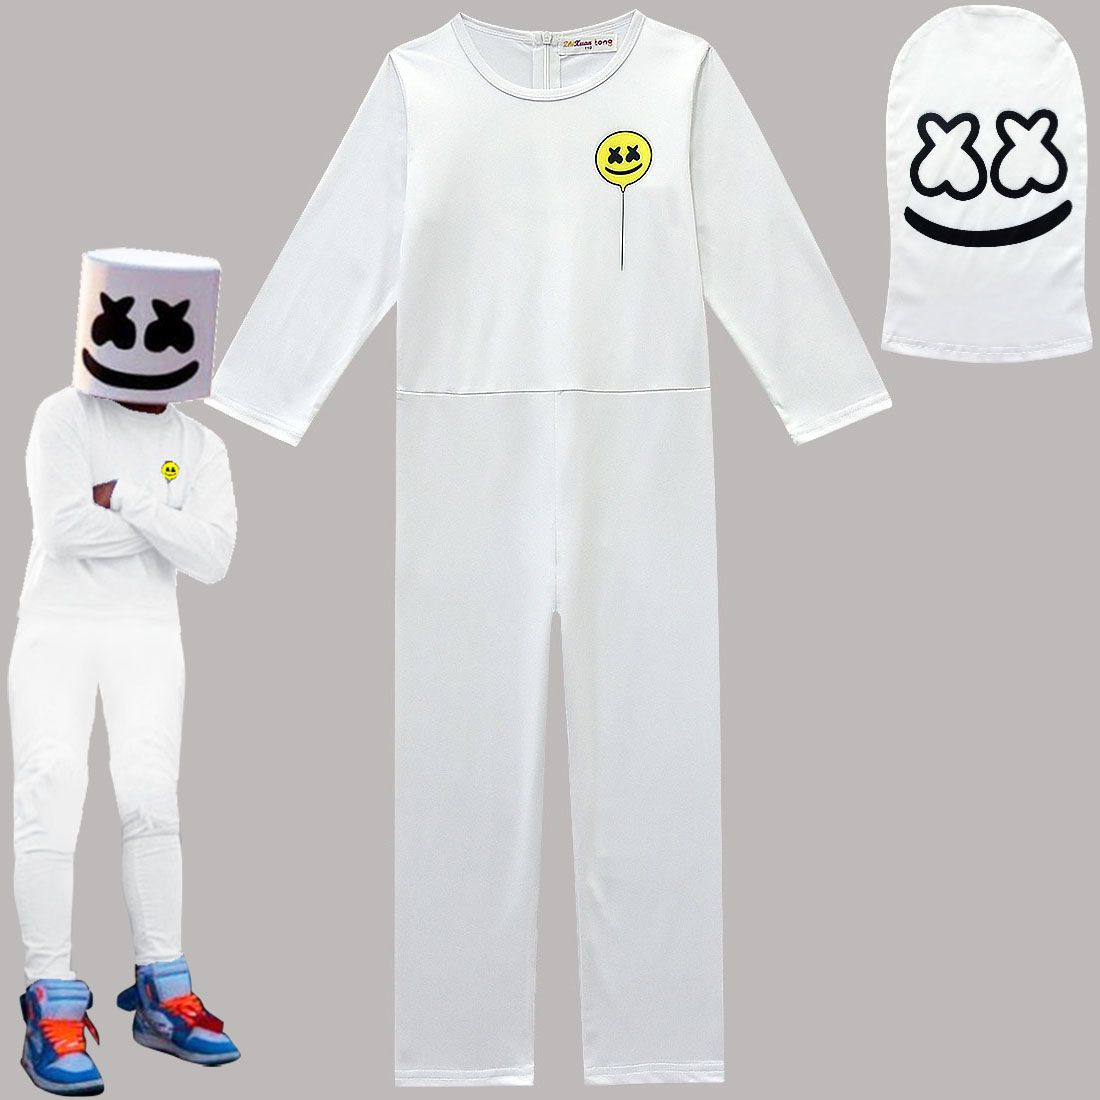 DJ Marshmallow Kids Costume - Halloween USA